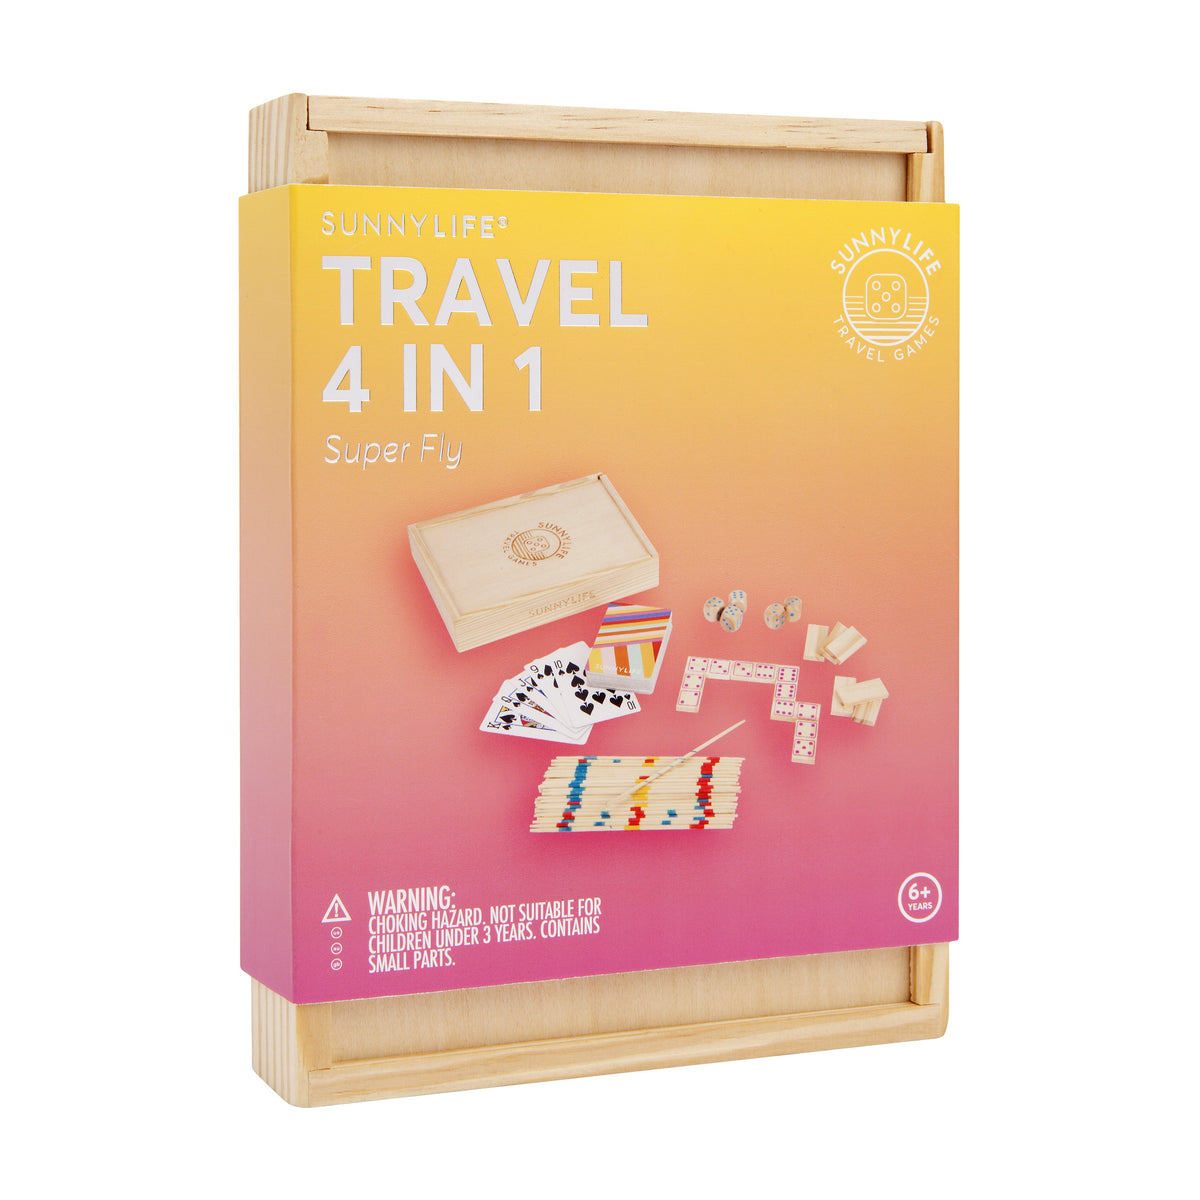 Sunnylife | Travel 4 in 1 | Super Fly